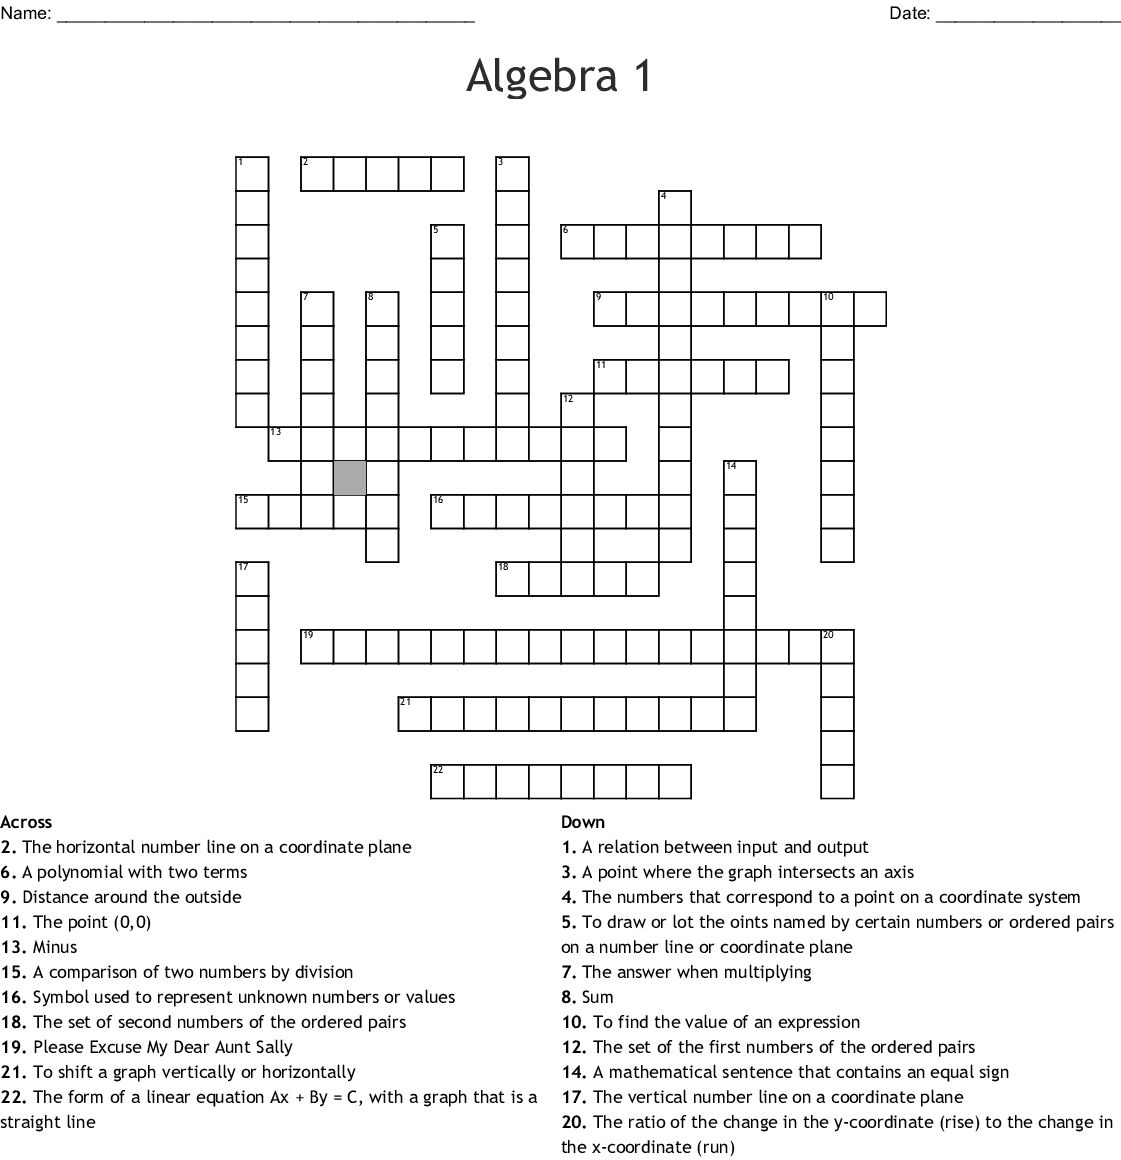 Algebra 1 Crossword - Wordmint - Algebra 1 Crossword Puzzles Printable